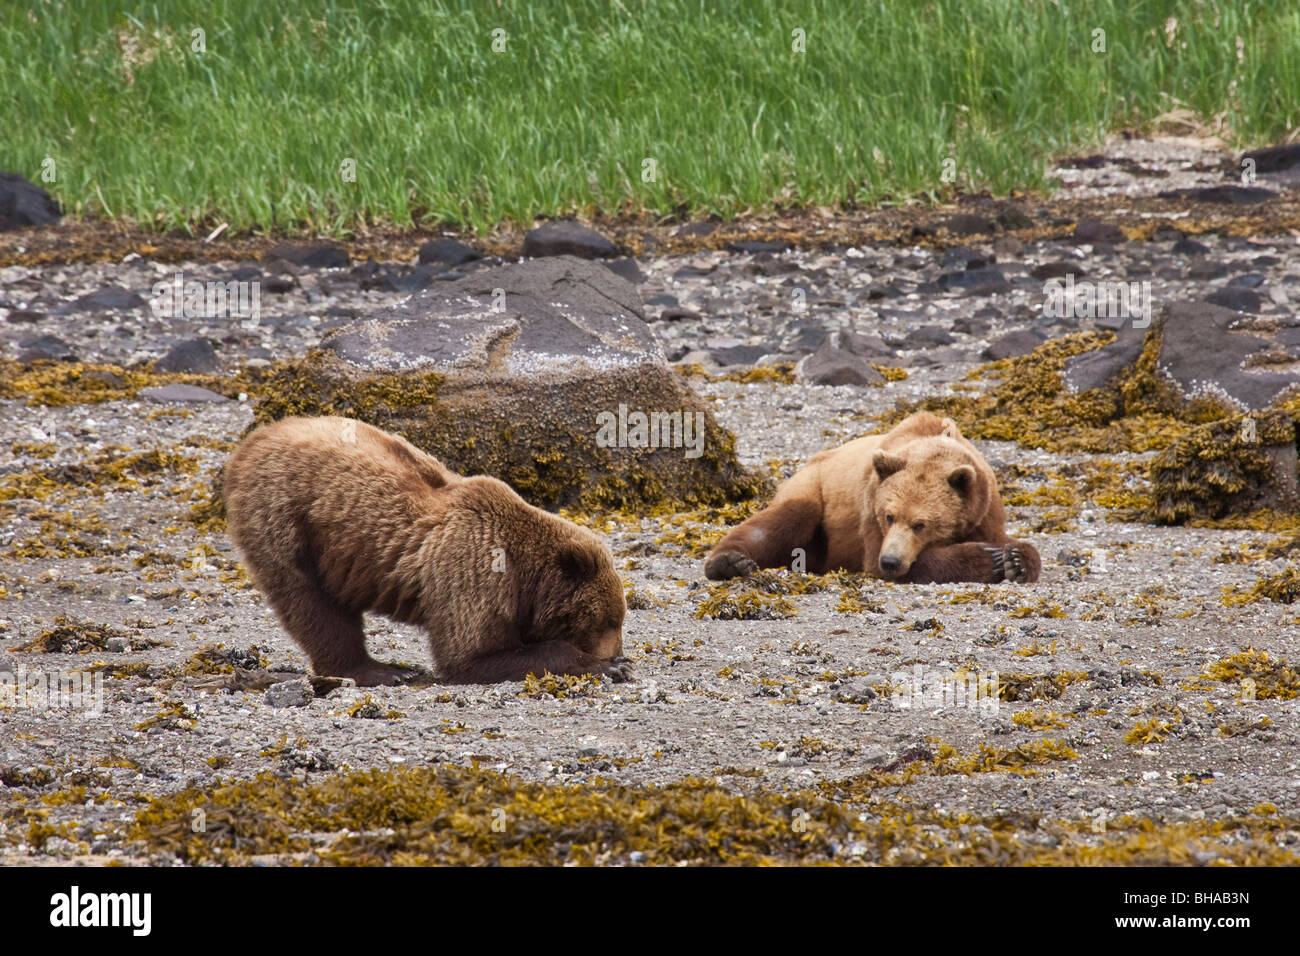 Brown bear digs for clams  while a second bear rests on the beach, Geographic Harbor, Katmai National Park, Southwest - Stock Image